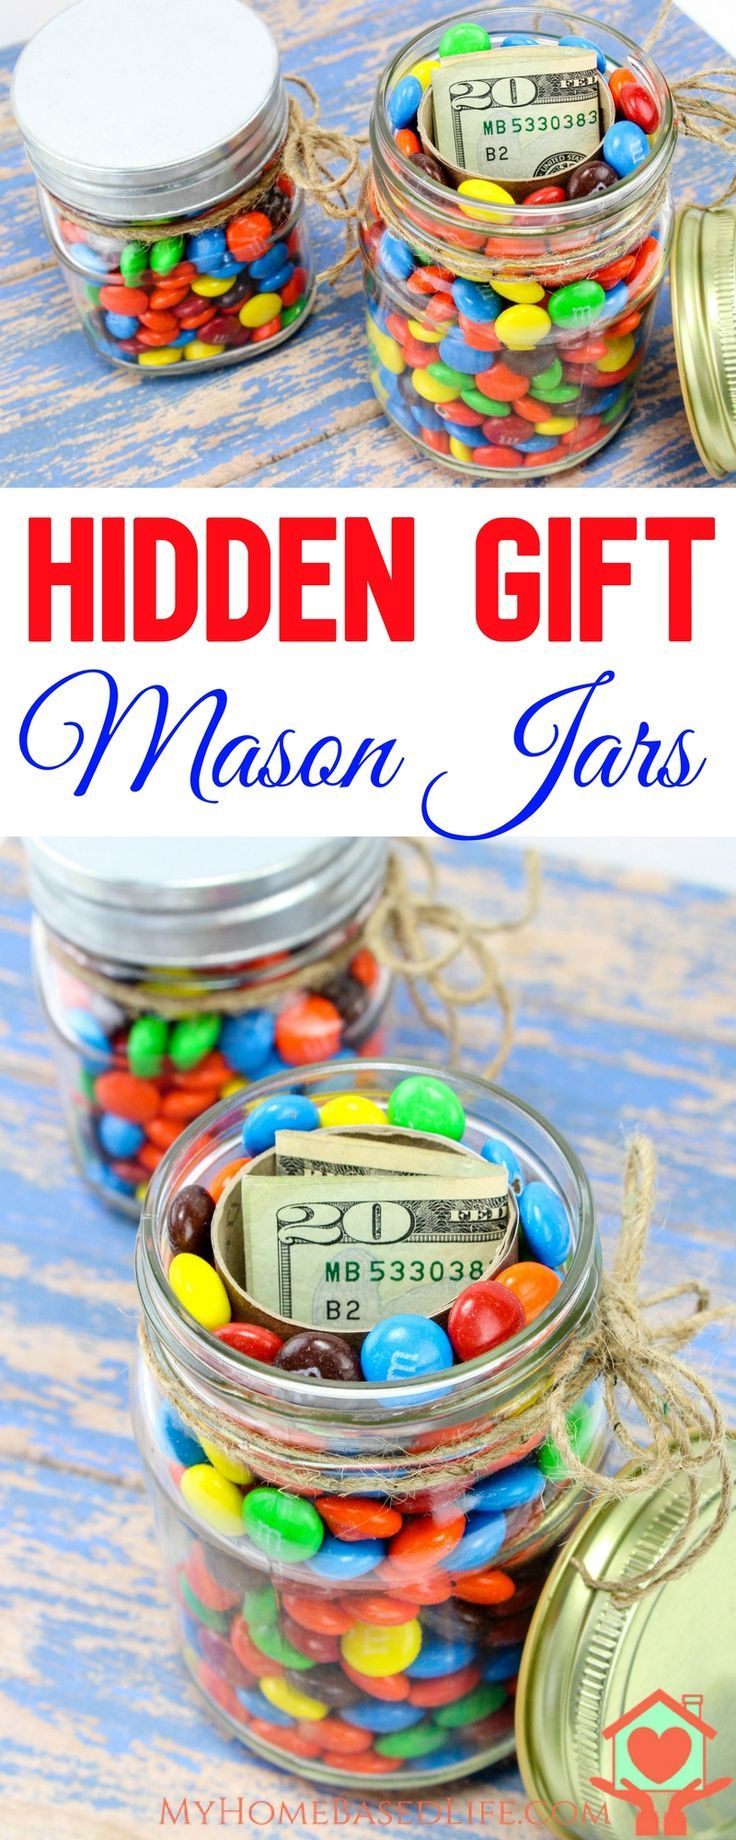 Hidden Gift Jars Christmas Gift Jars Gifts In A Jar Christmas Jar Gift Diy Christmas Gifts Money Gift Idea Giftsinaja With Images Christmas Jar Gifts Jar Gifts